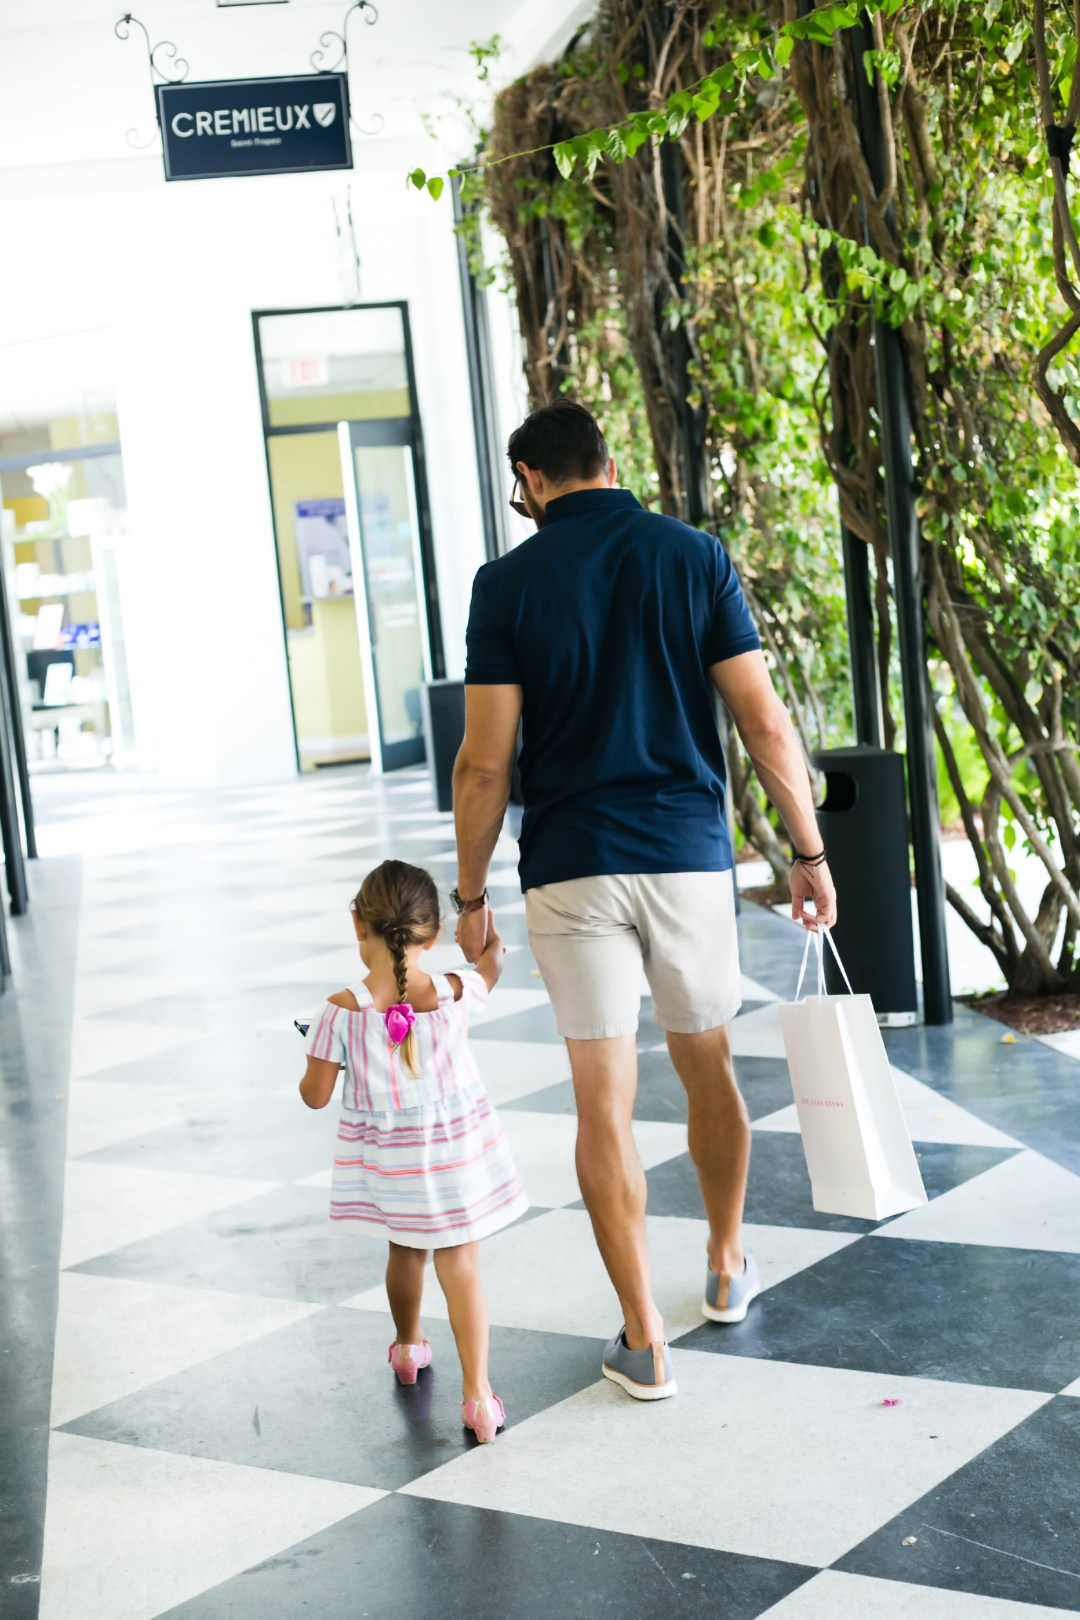 where to shop in Florida, best shopping plaza Palm Beach